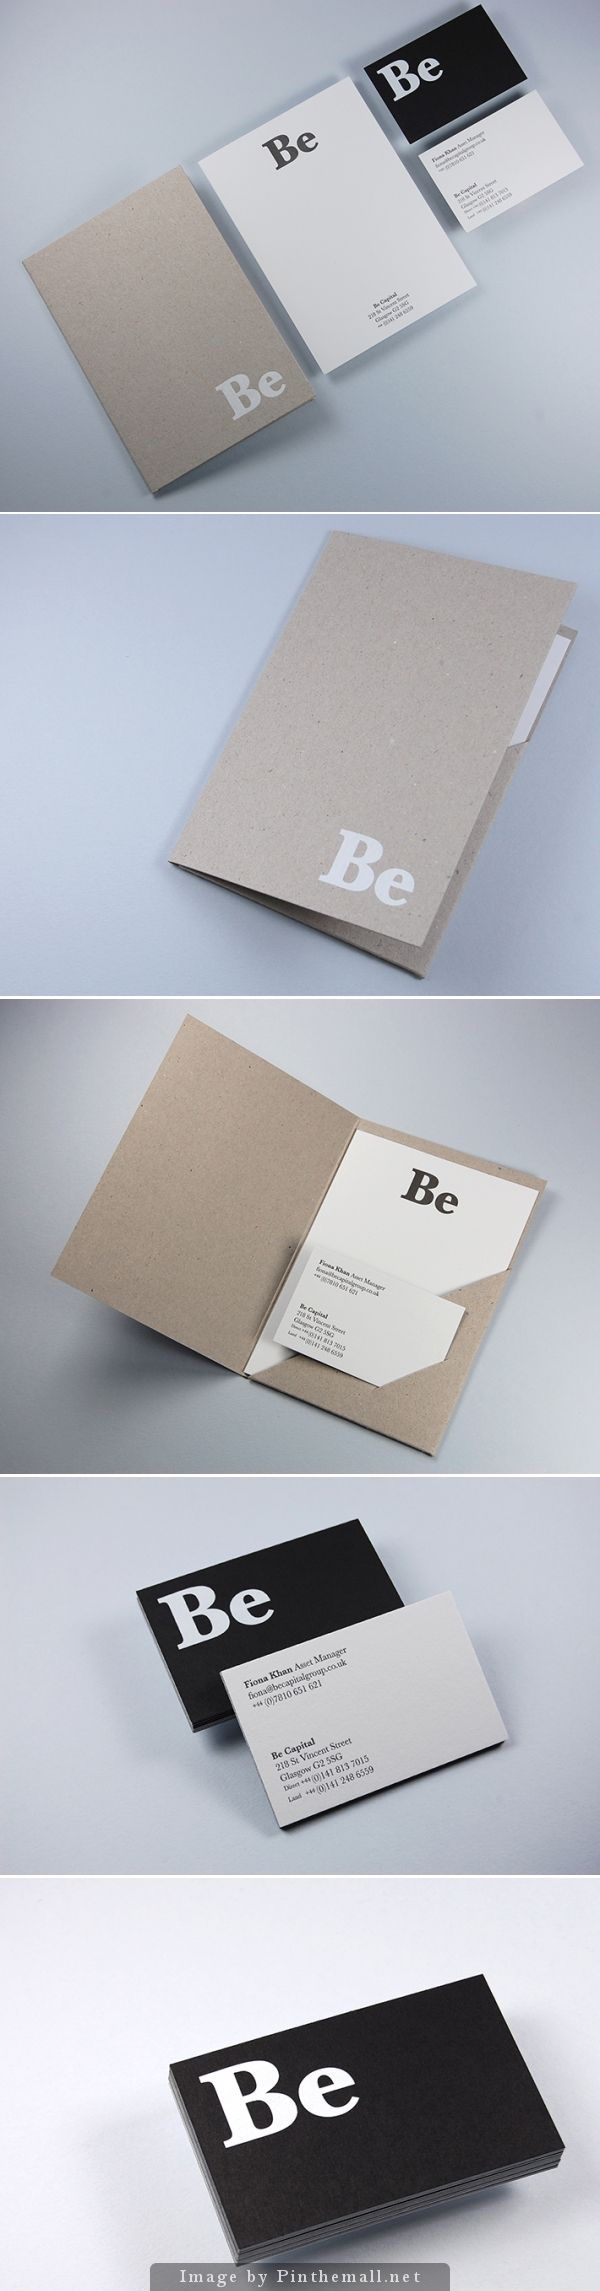 Best 25 Simple Business Cards Ideas On Pinterest Business Cards